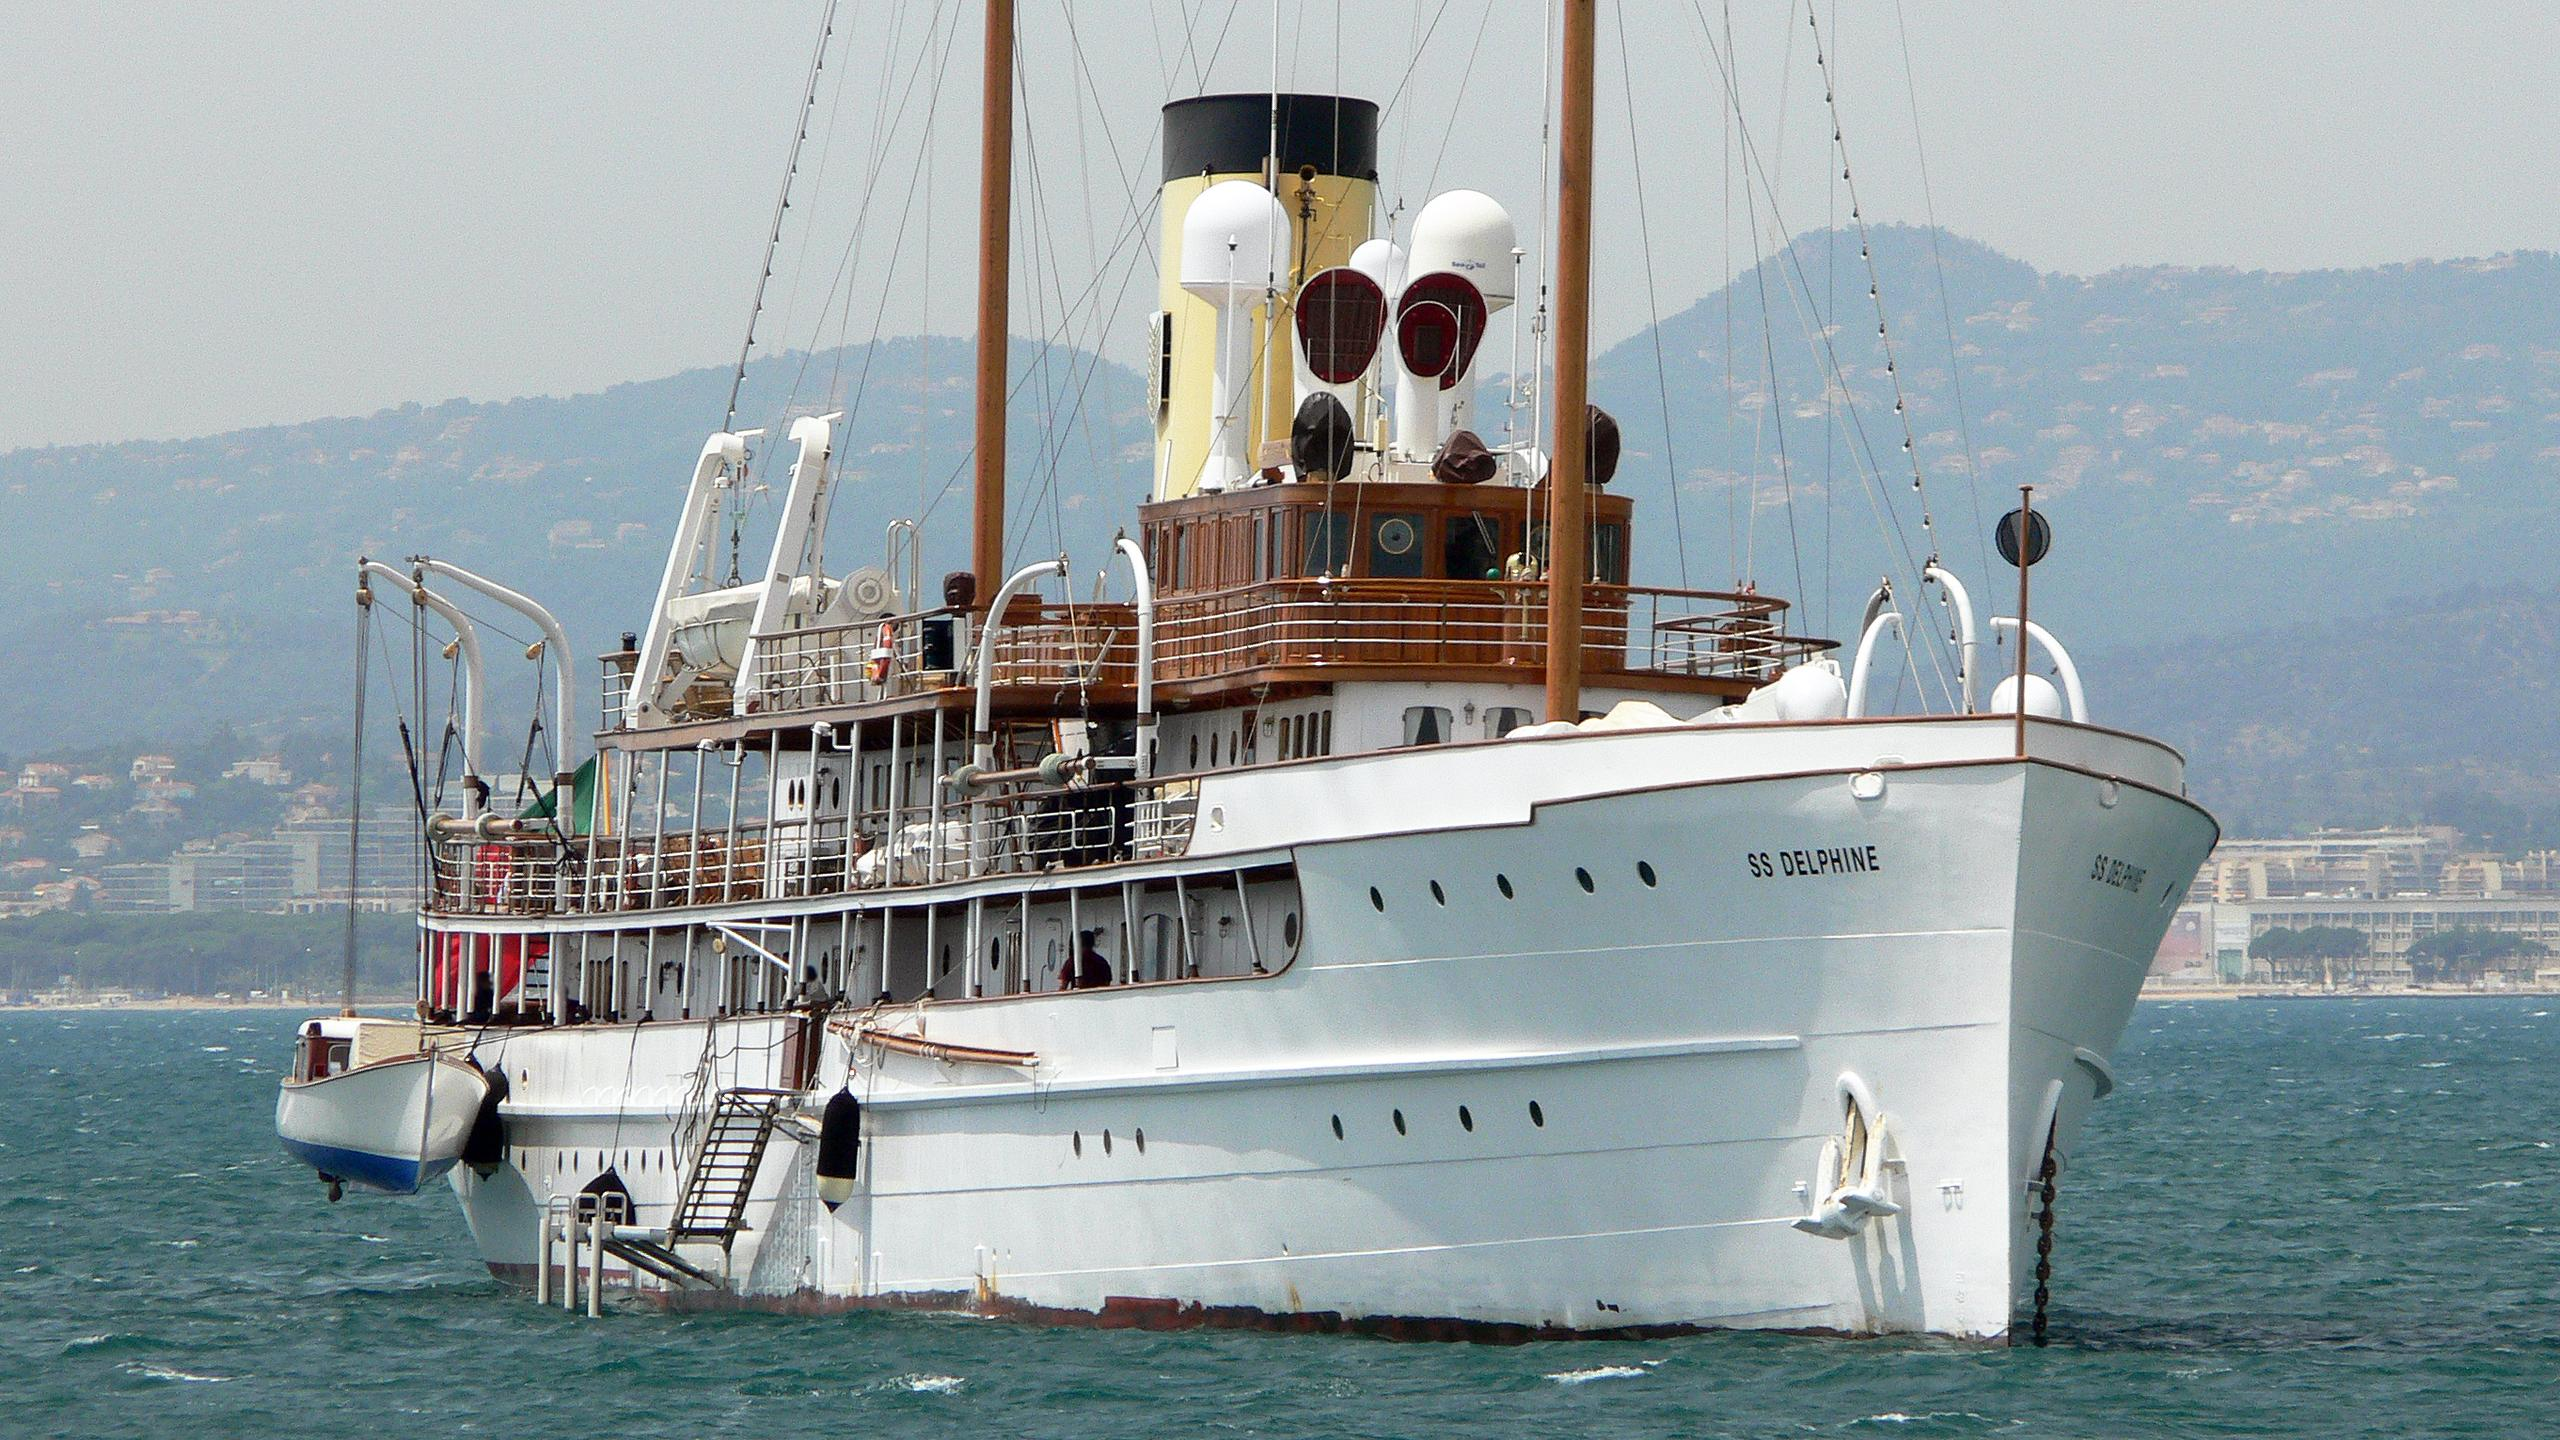 delphine-motor-yacht-1921-great-lakes-ew-79m-bow